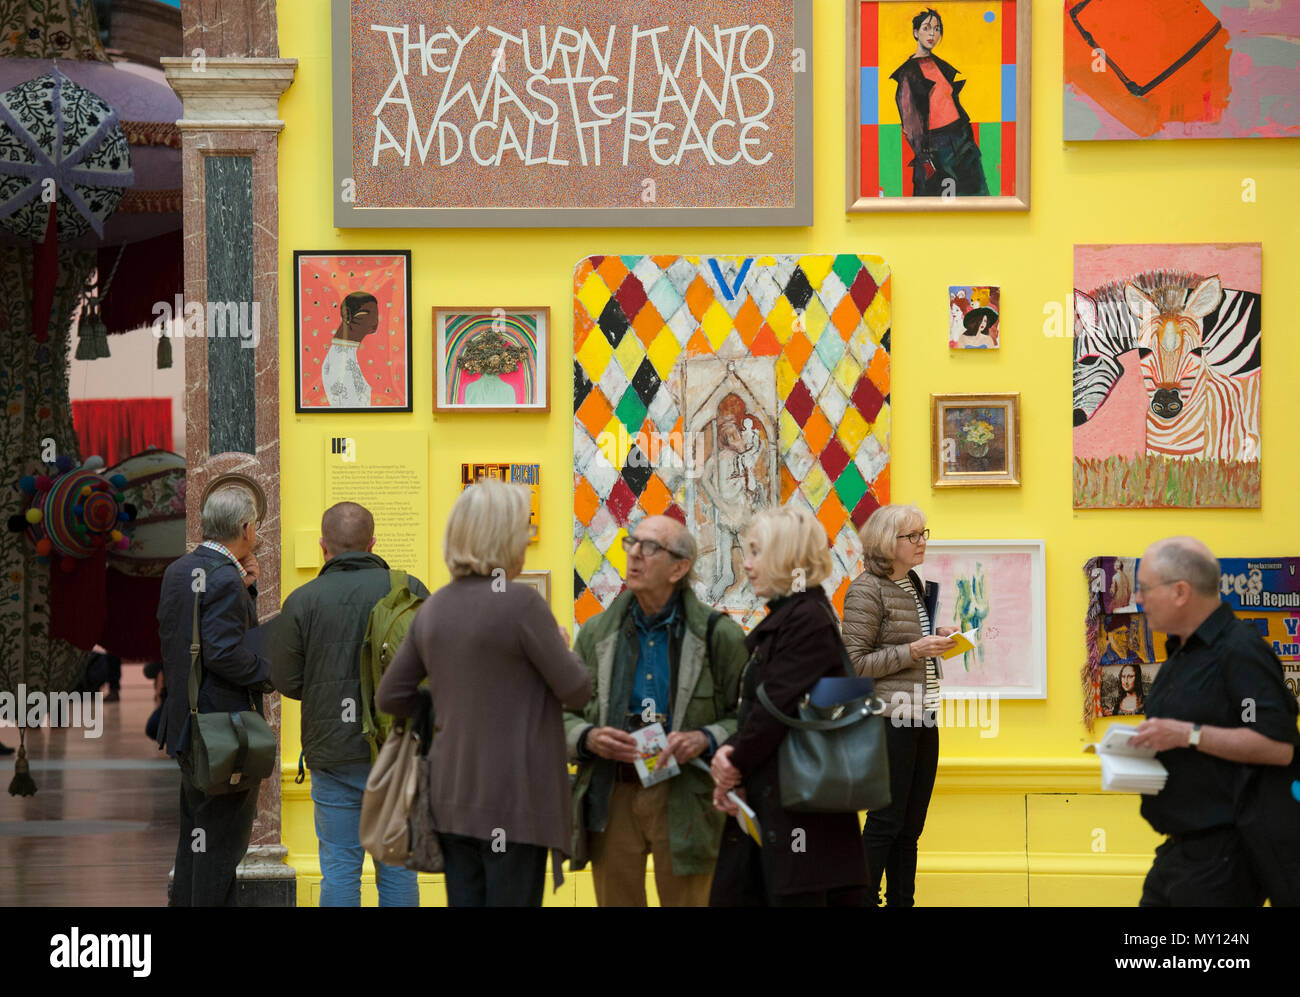 Burlington House, London, UK. 5 June, 2018. The Royal Academy's annual Summer Exhibitioncelebrates its 250th anniversary. To mark this momentous occasion, the exhibition is co-ordinated by Grayson Perry RA, who, with his committee of fellow artists have handpicked over 1,300 artworks in an array of mediums. There's a monumental sculpture by Anish Kapoor RA in the courtyard,and within the galleries you'll find vast new works by David Hockney RA and Joana Vasconcelos. Credit: Malcolm Park editorial/Alamy Live News - Stock Image